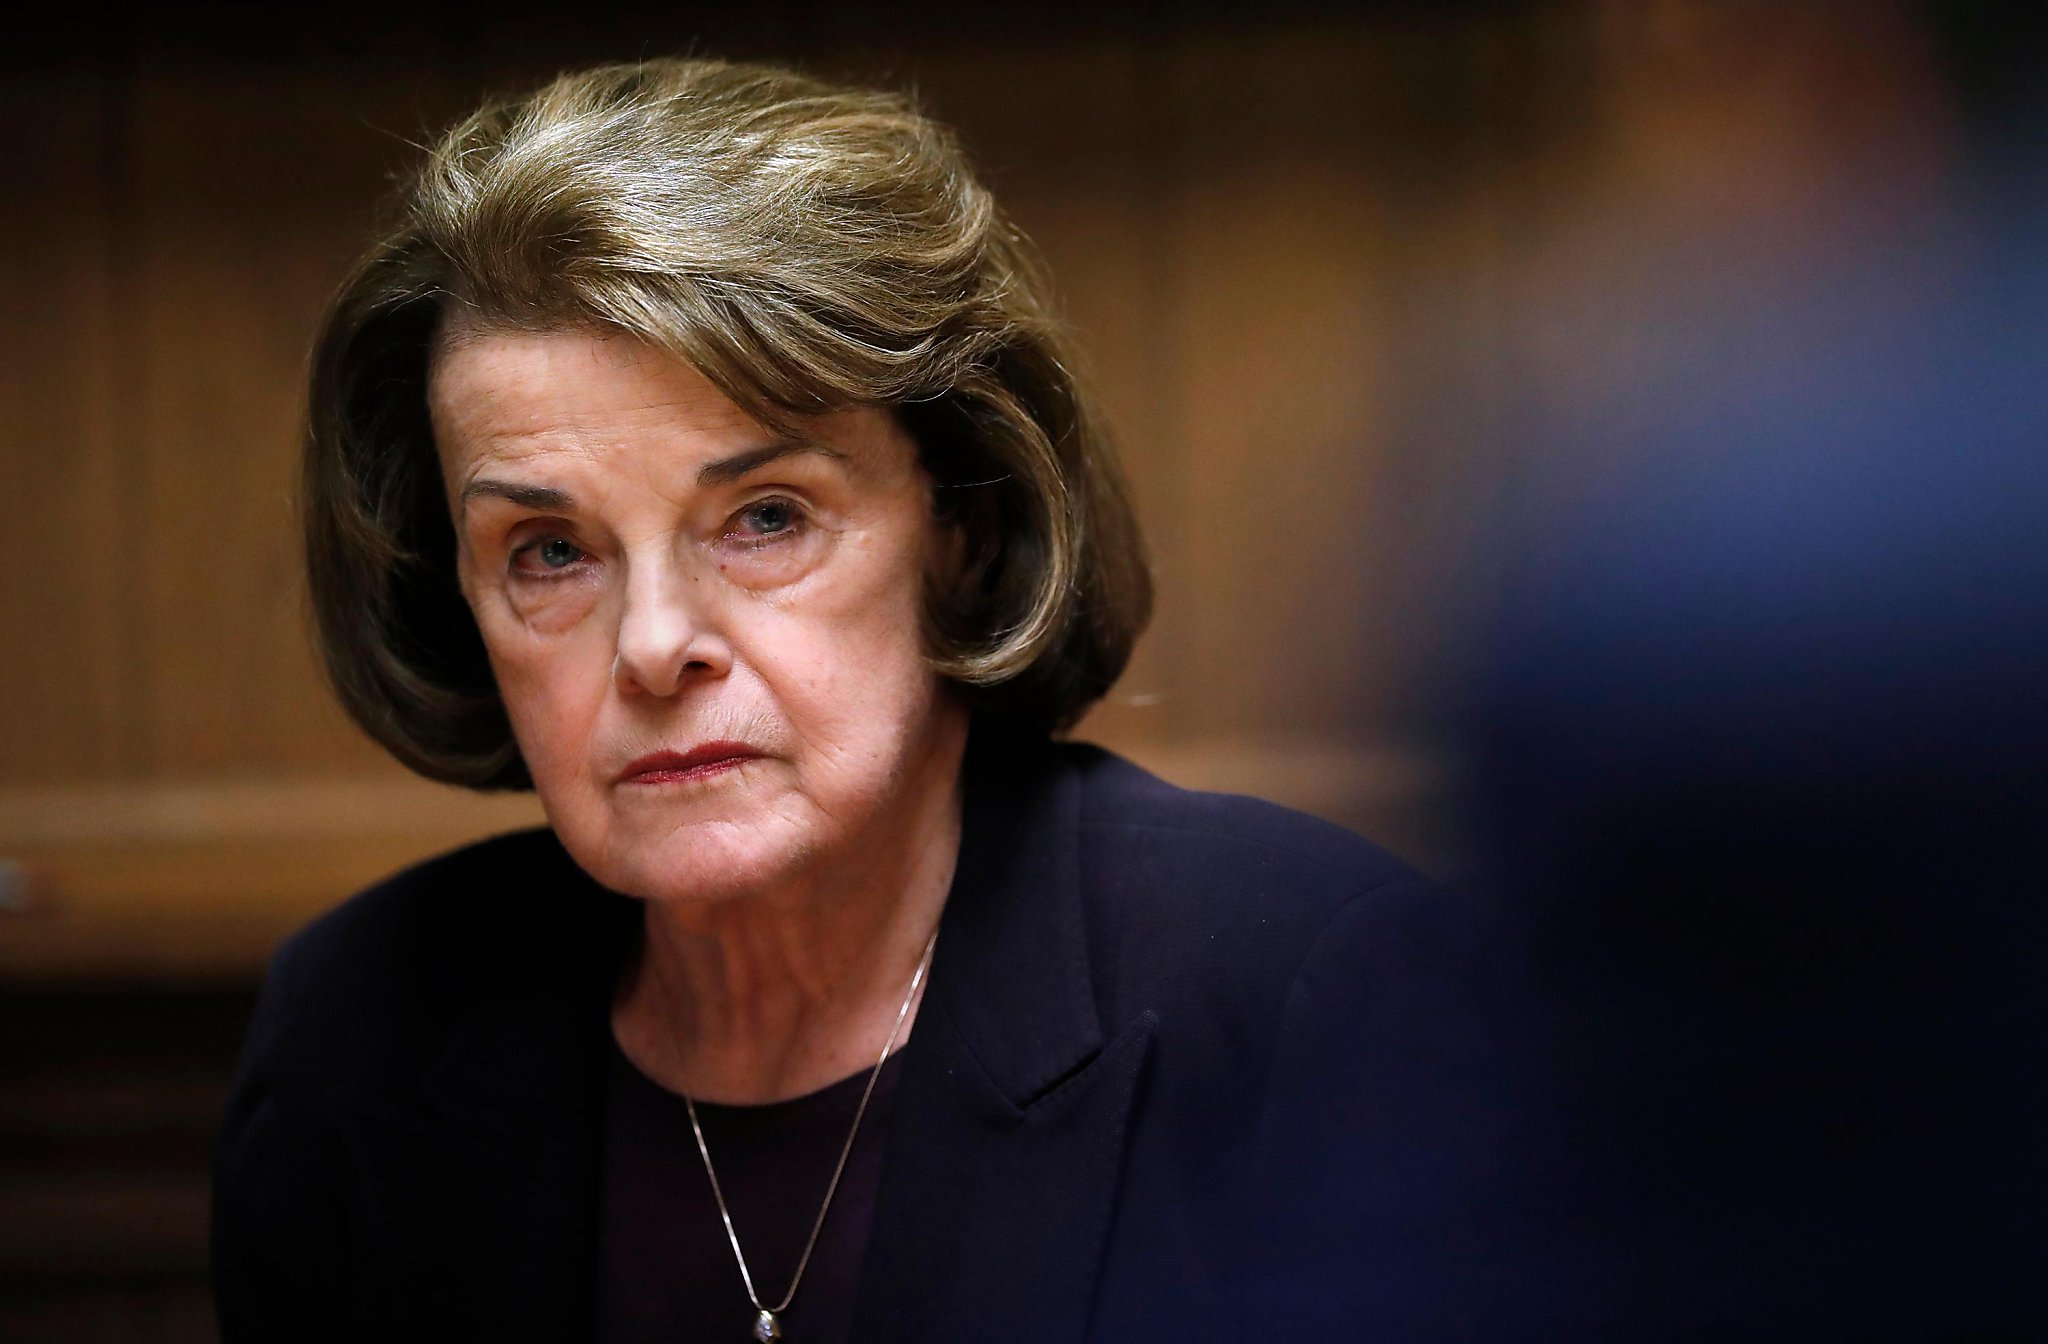 Editorial: Chronicle Recommends Dianne Feinstein For U.S